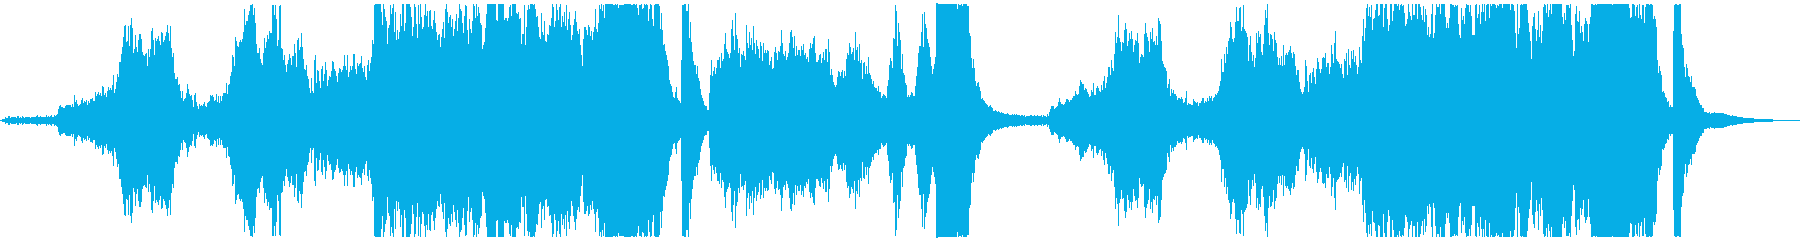 Mussorgsky's Night on Bald Mountain_Intro's reproduced waveform